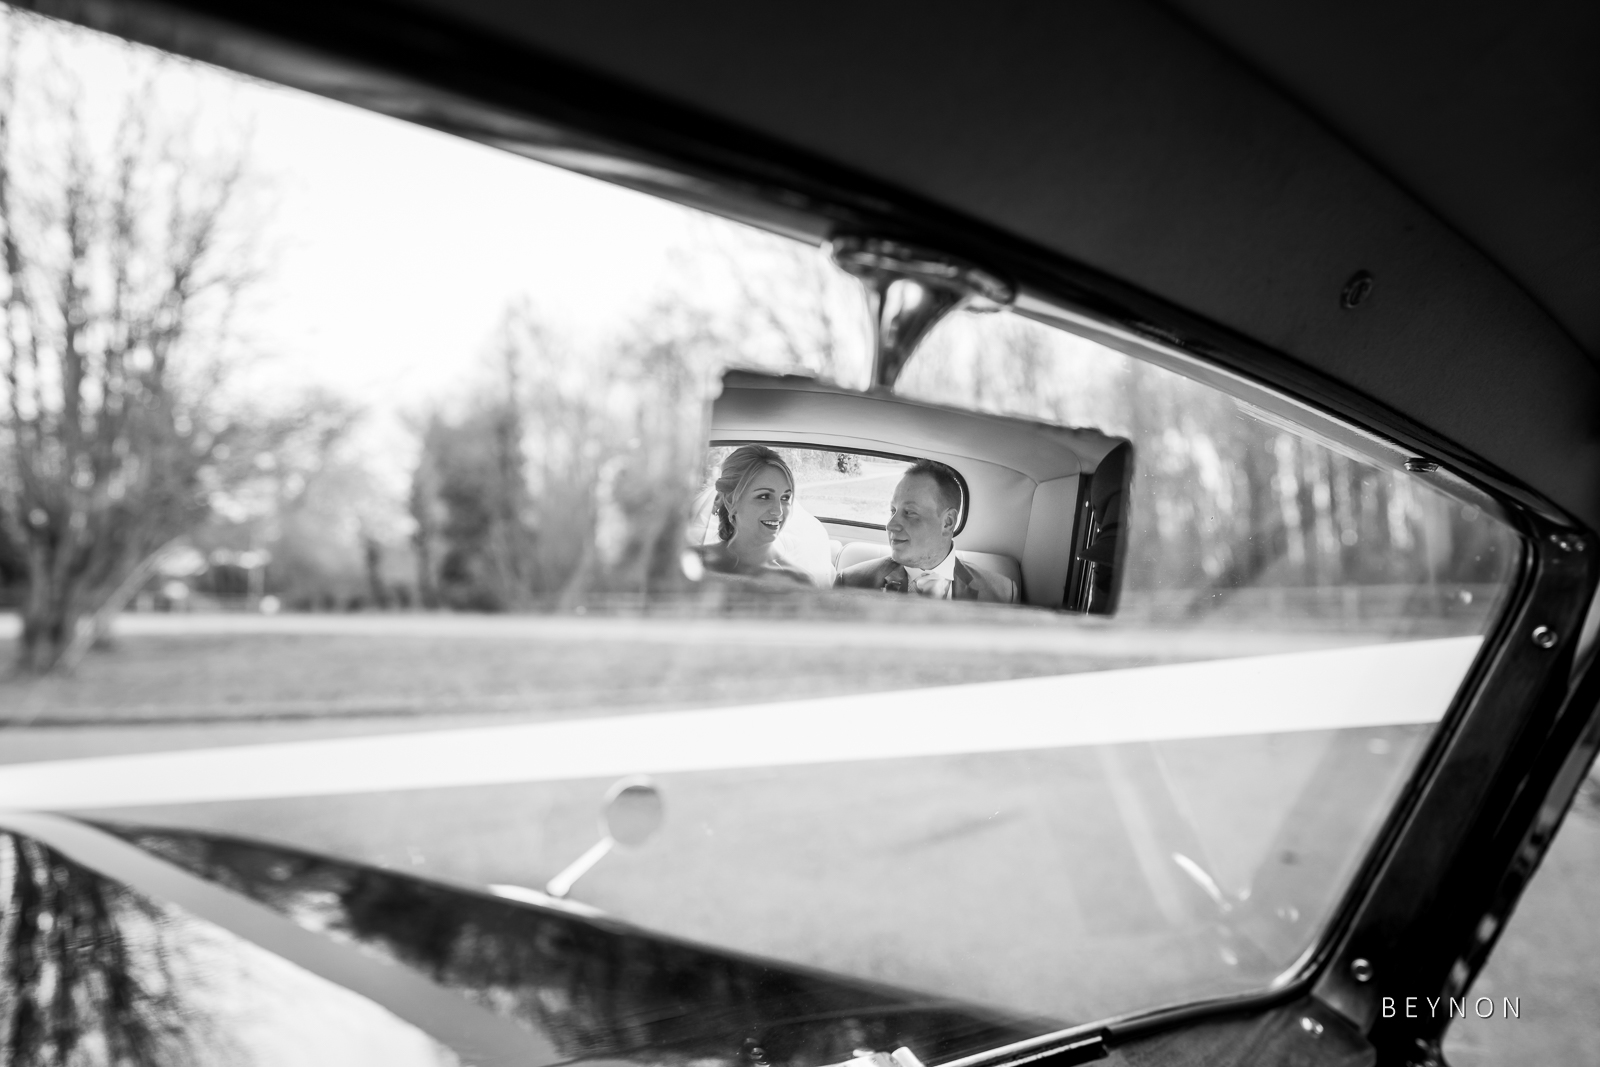 Photograph of Bride and Groom in rear view mirror